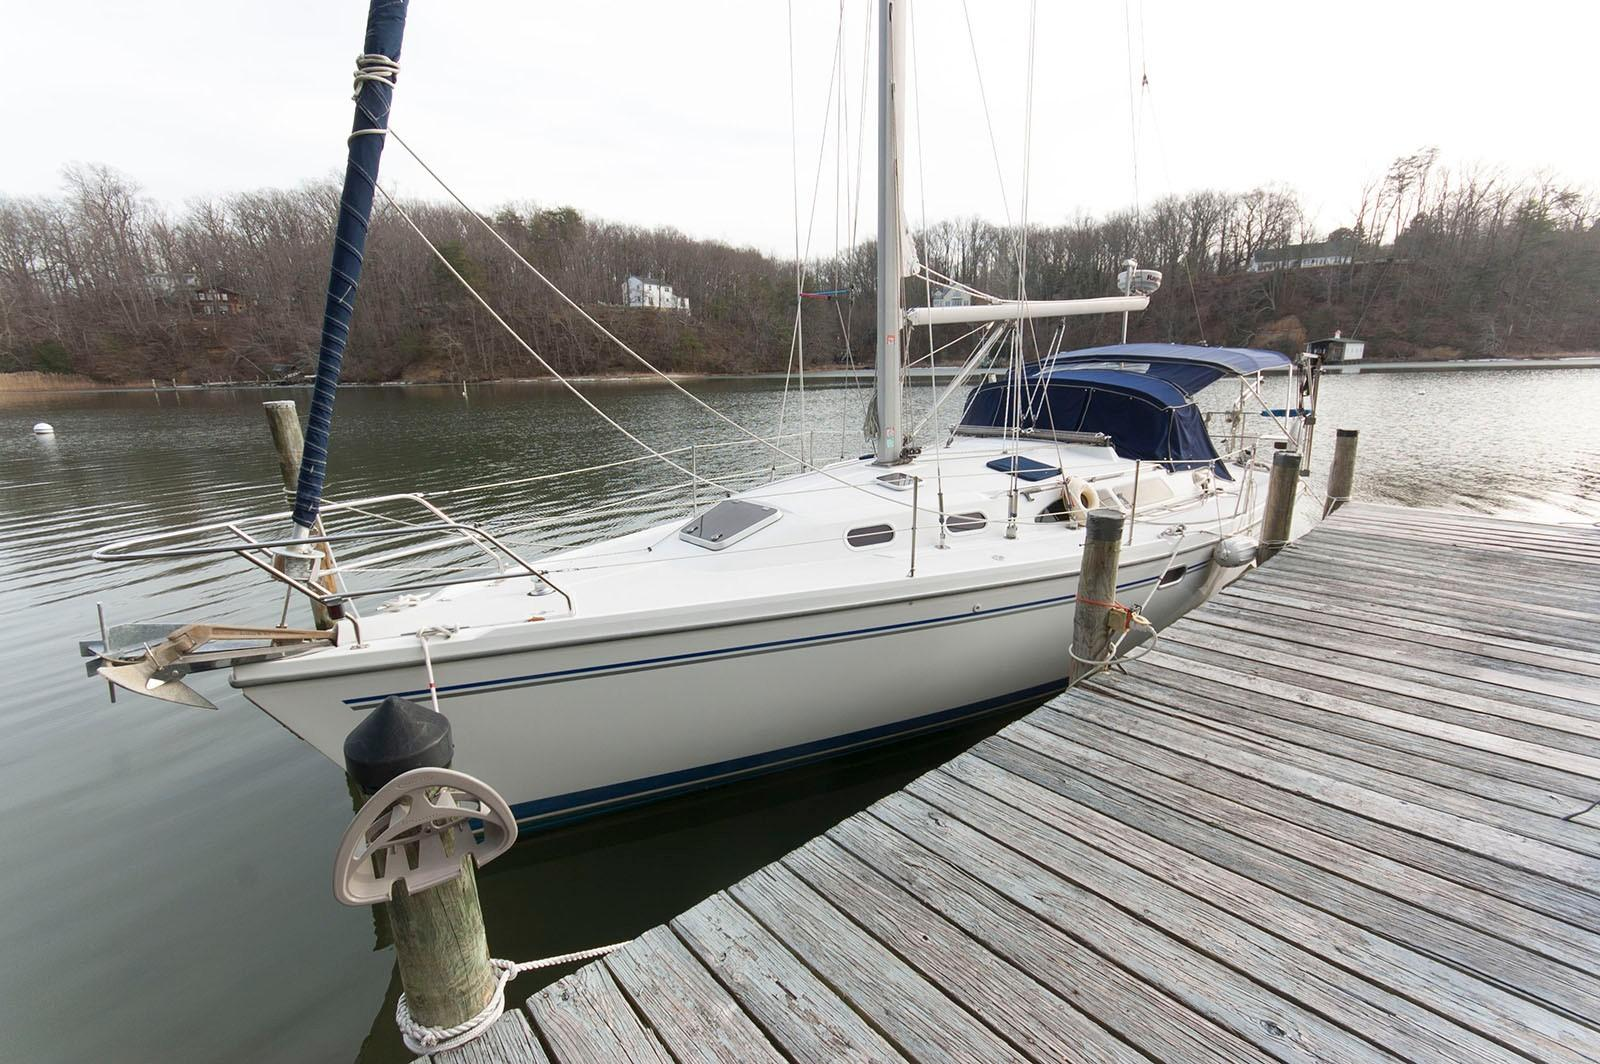 2003 catalina 350 sail boat for sale www yachtworld com rh yachtworld com Catalina 350 Brochure Catalina 350 Inside